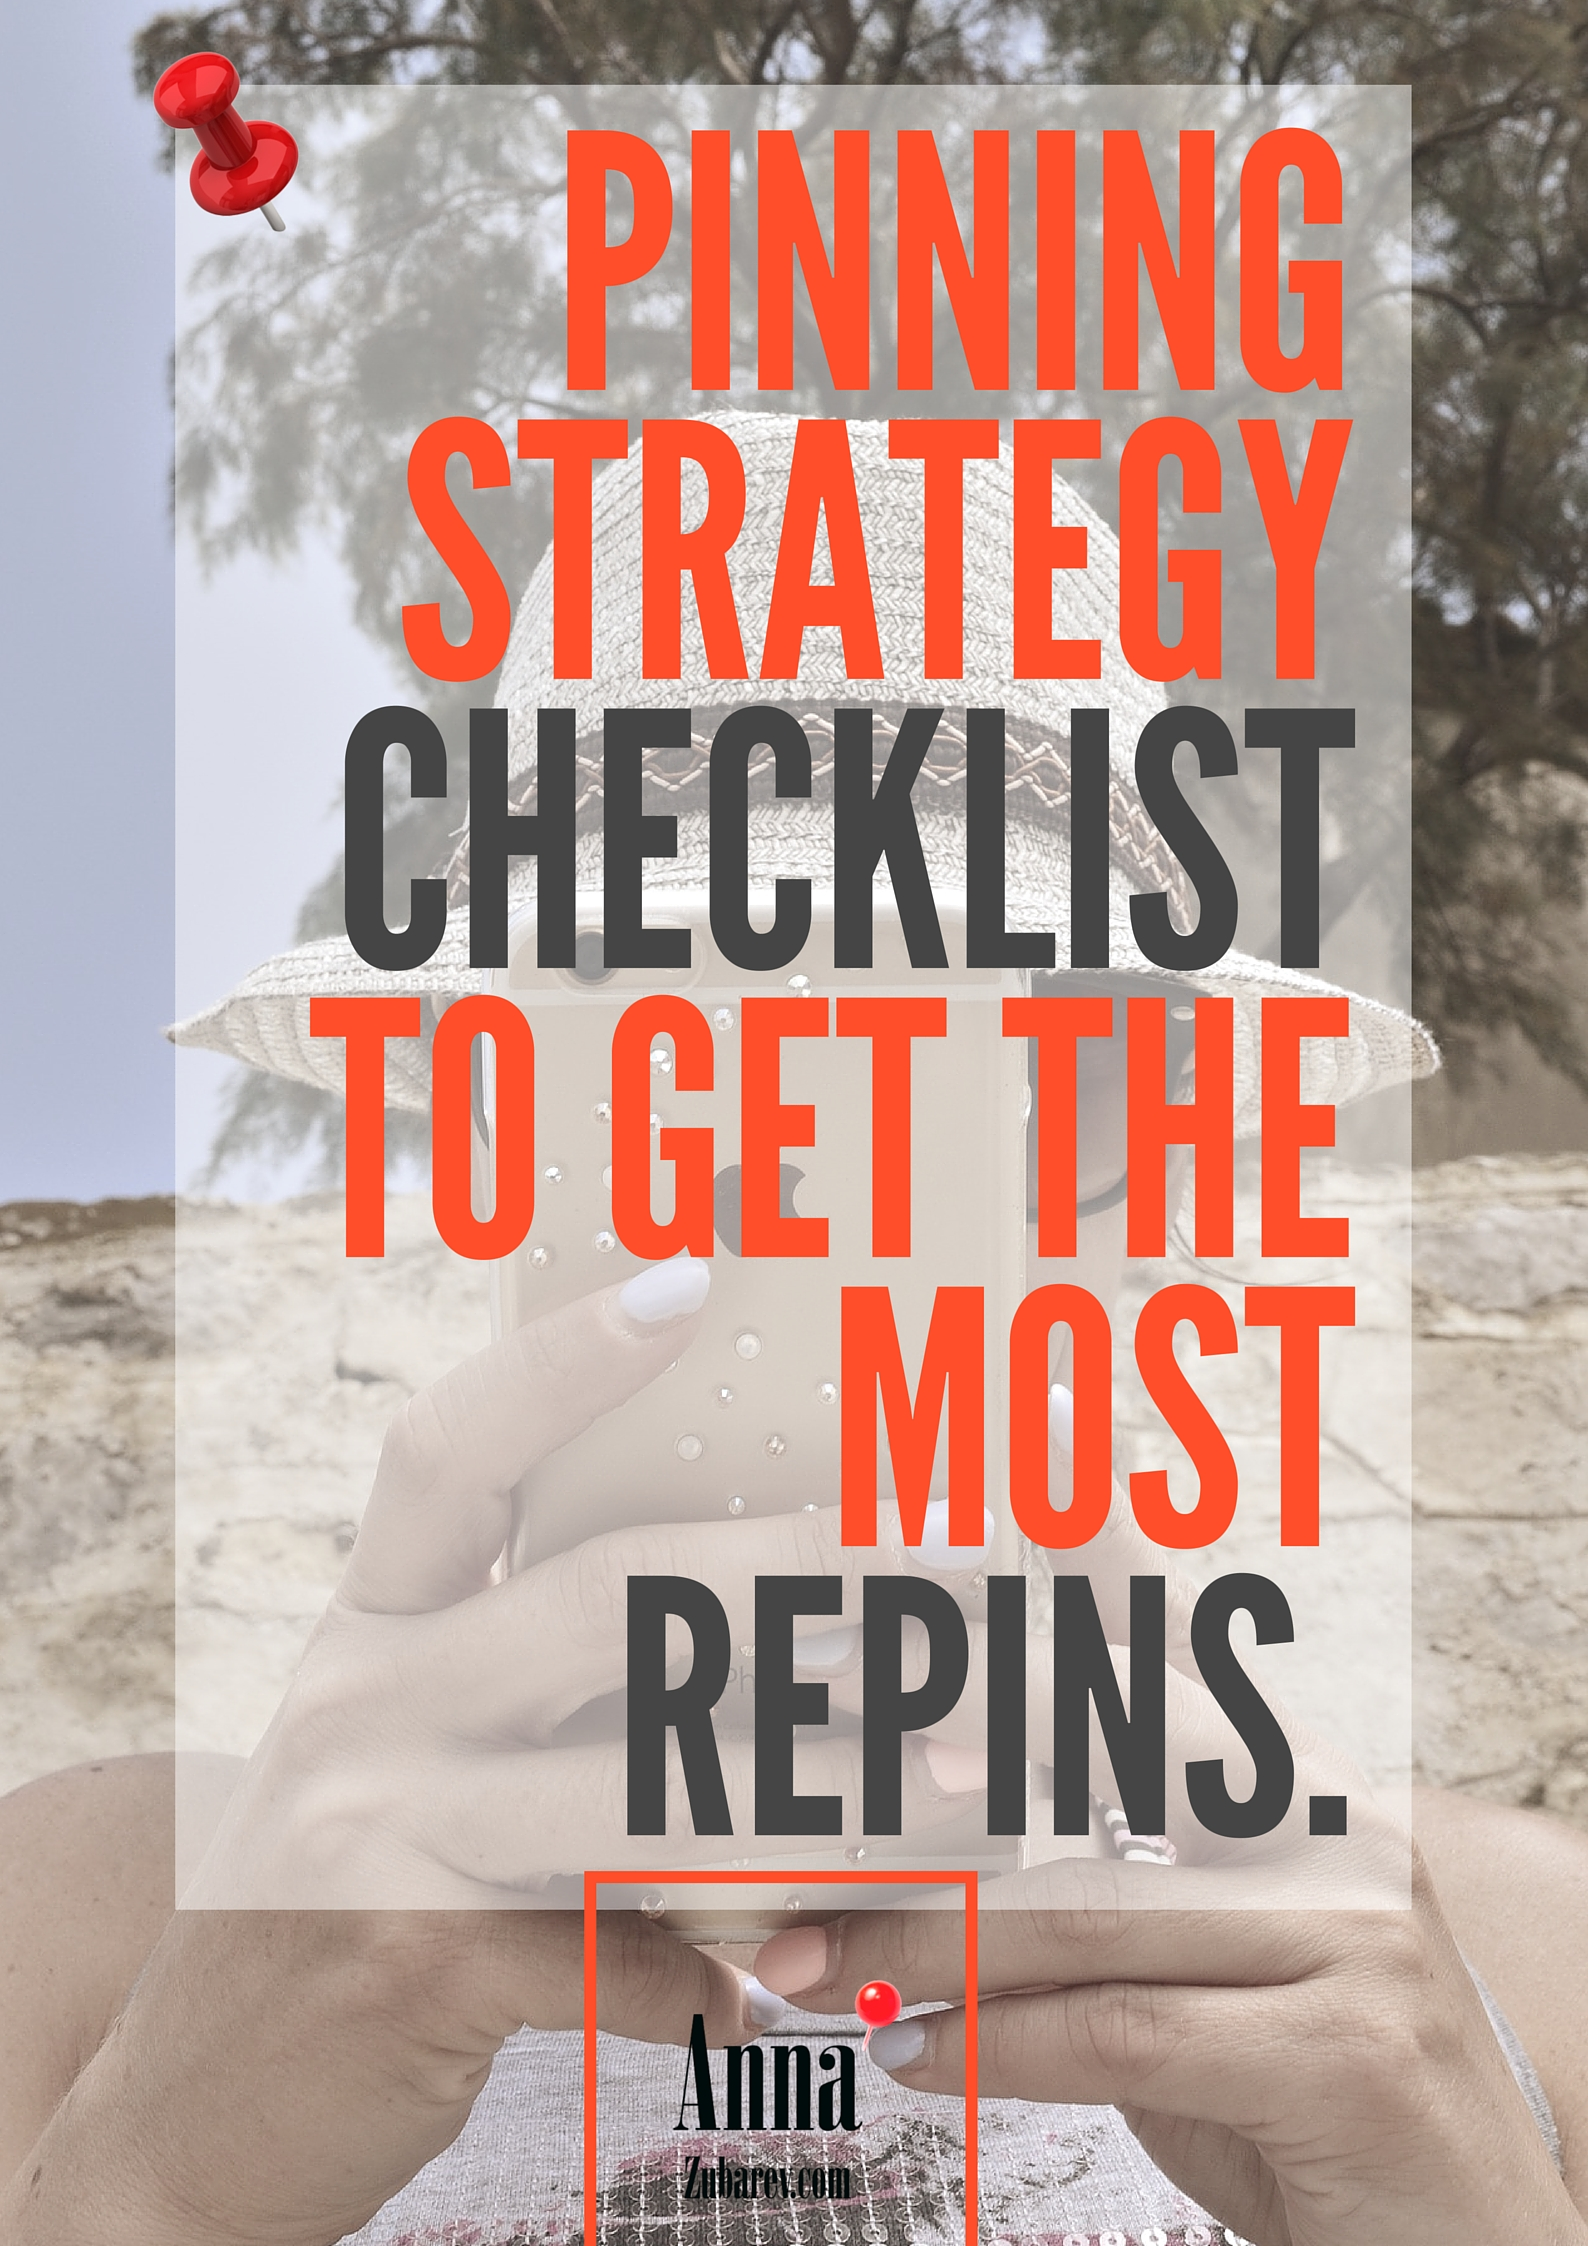 Pinning Strategy Checklist To Get The Most RePins. via @annazubarev